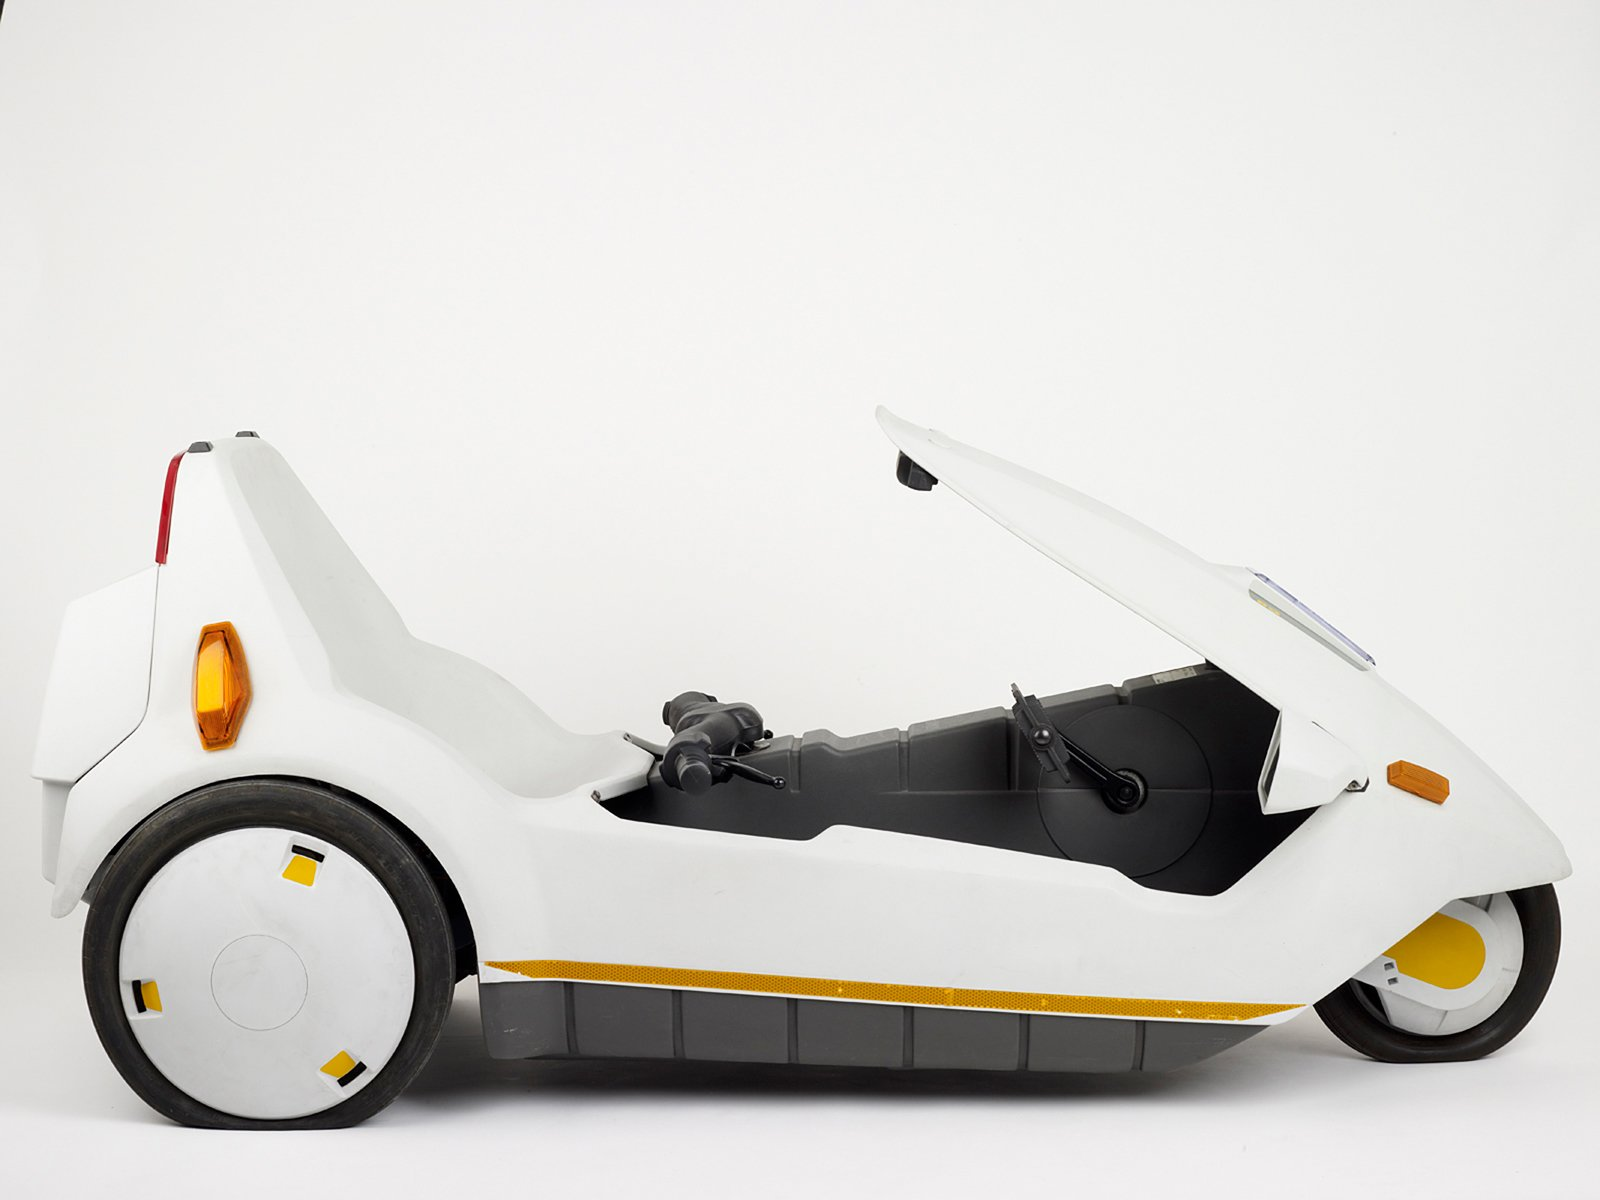 Sir Clive Sinclair remains a key figure in British electronic tech design. His 1985 C5 electric vehicle may have been ahead of its time in design and concept, but was a commercial flop. It just received the dubious distinction of worst innovation of all time by technology buffs, according to The Telegraph. The manufacturing process for this tiny vehicle was the same as that for making car bumpers, joining two pieces of polypropylene together in 70 seconds.  Design Museum London's Extraordinary Stories about Ordinary Things by Rebecca L. Weber